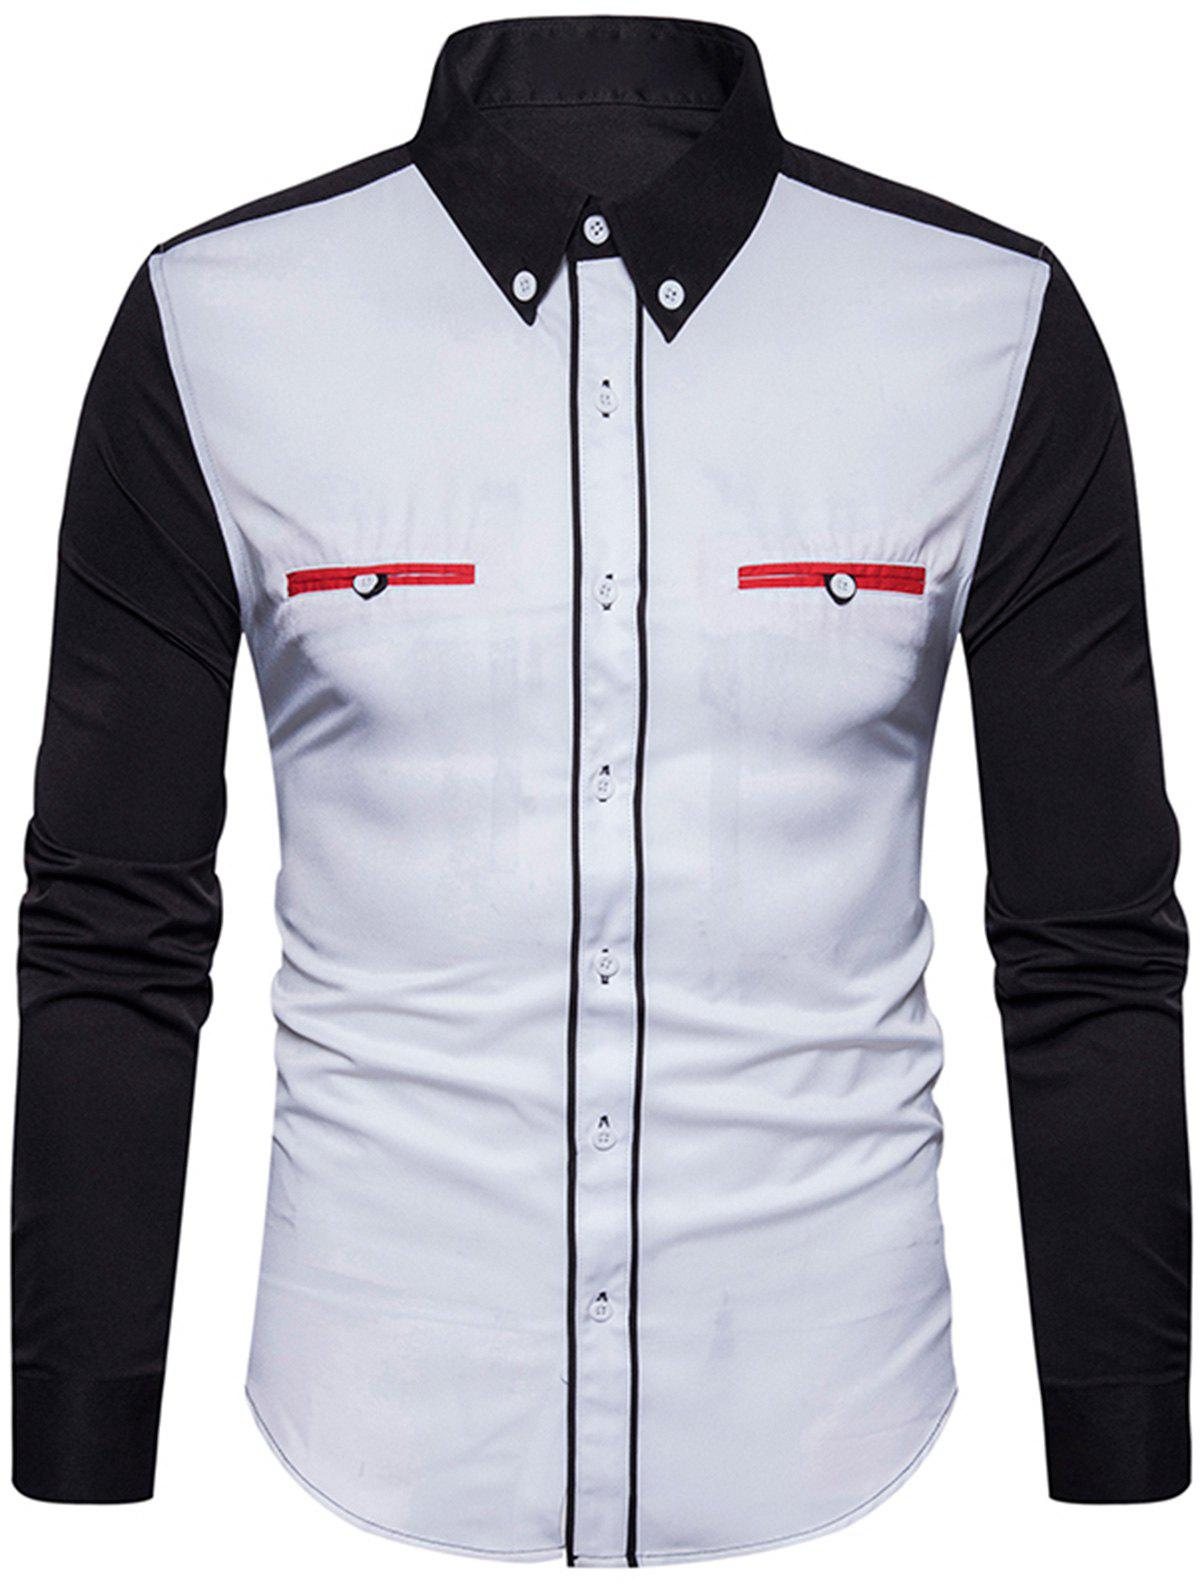 Edging Color Block Panel Button Down Shirt - Blanc L